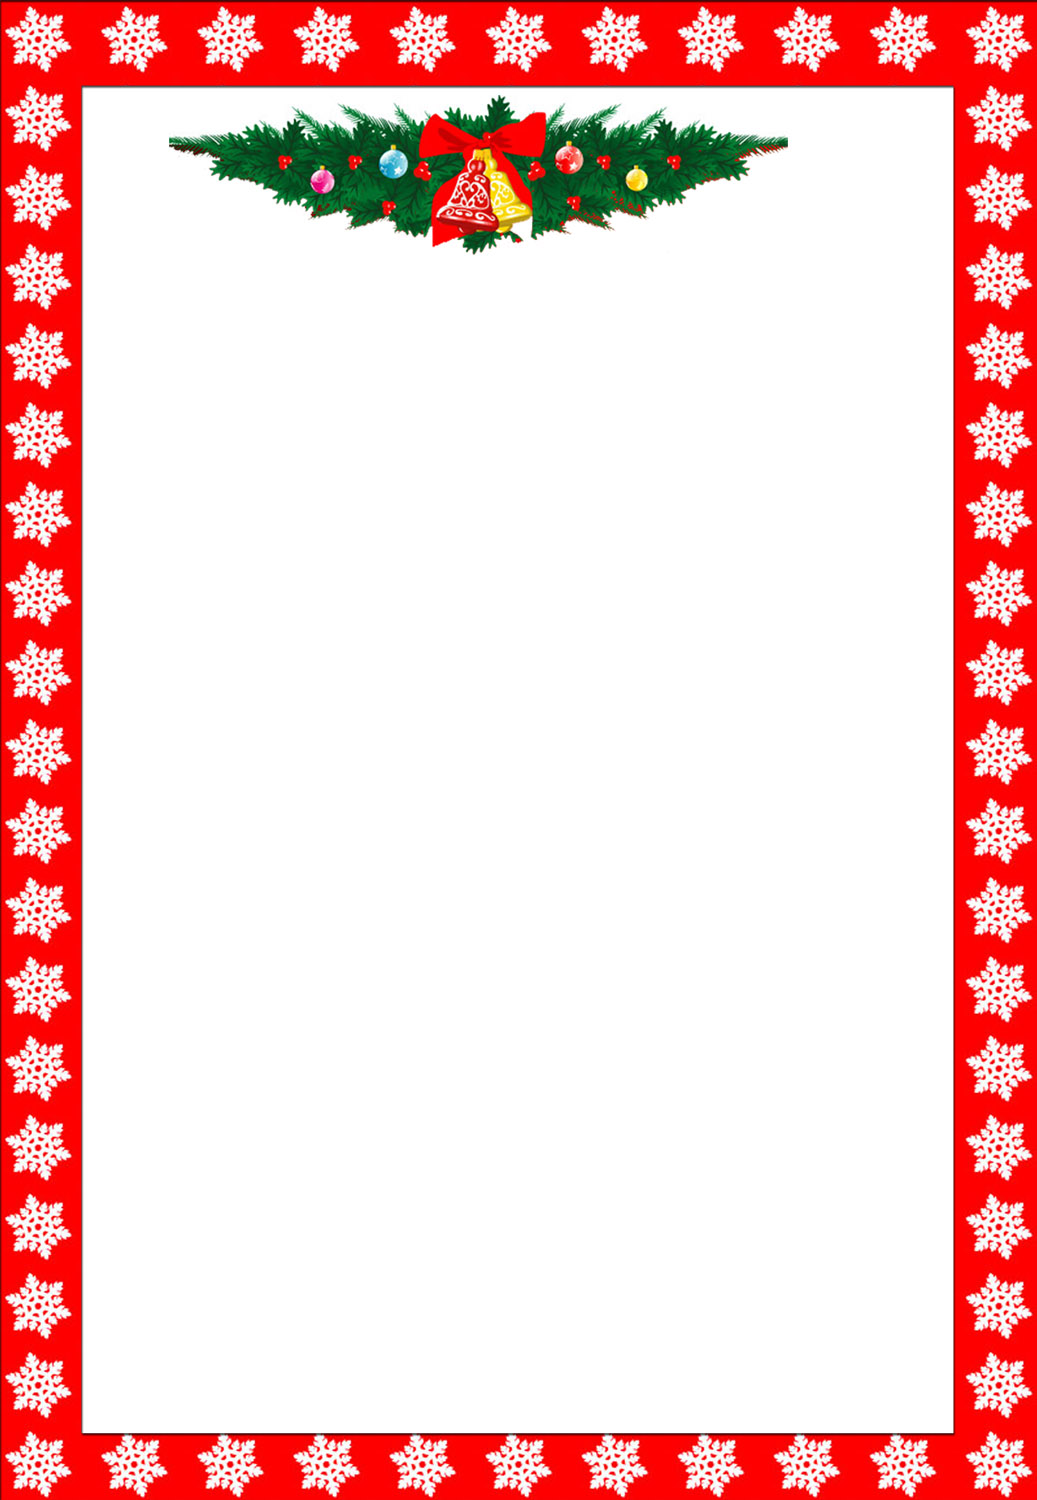 Christmas Borders Clip Art Free Printable Images & Pictures - Becuo